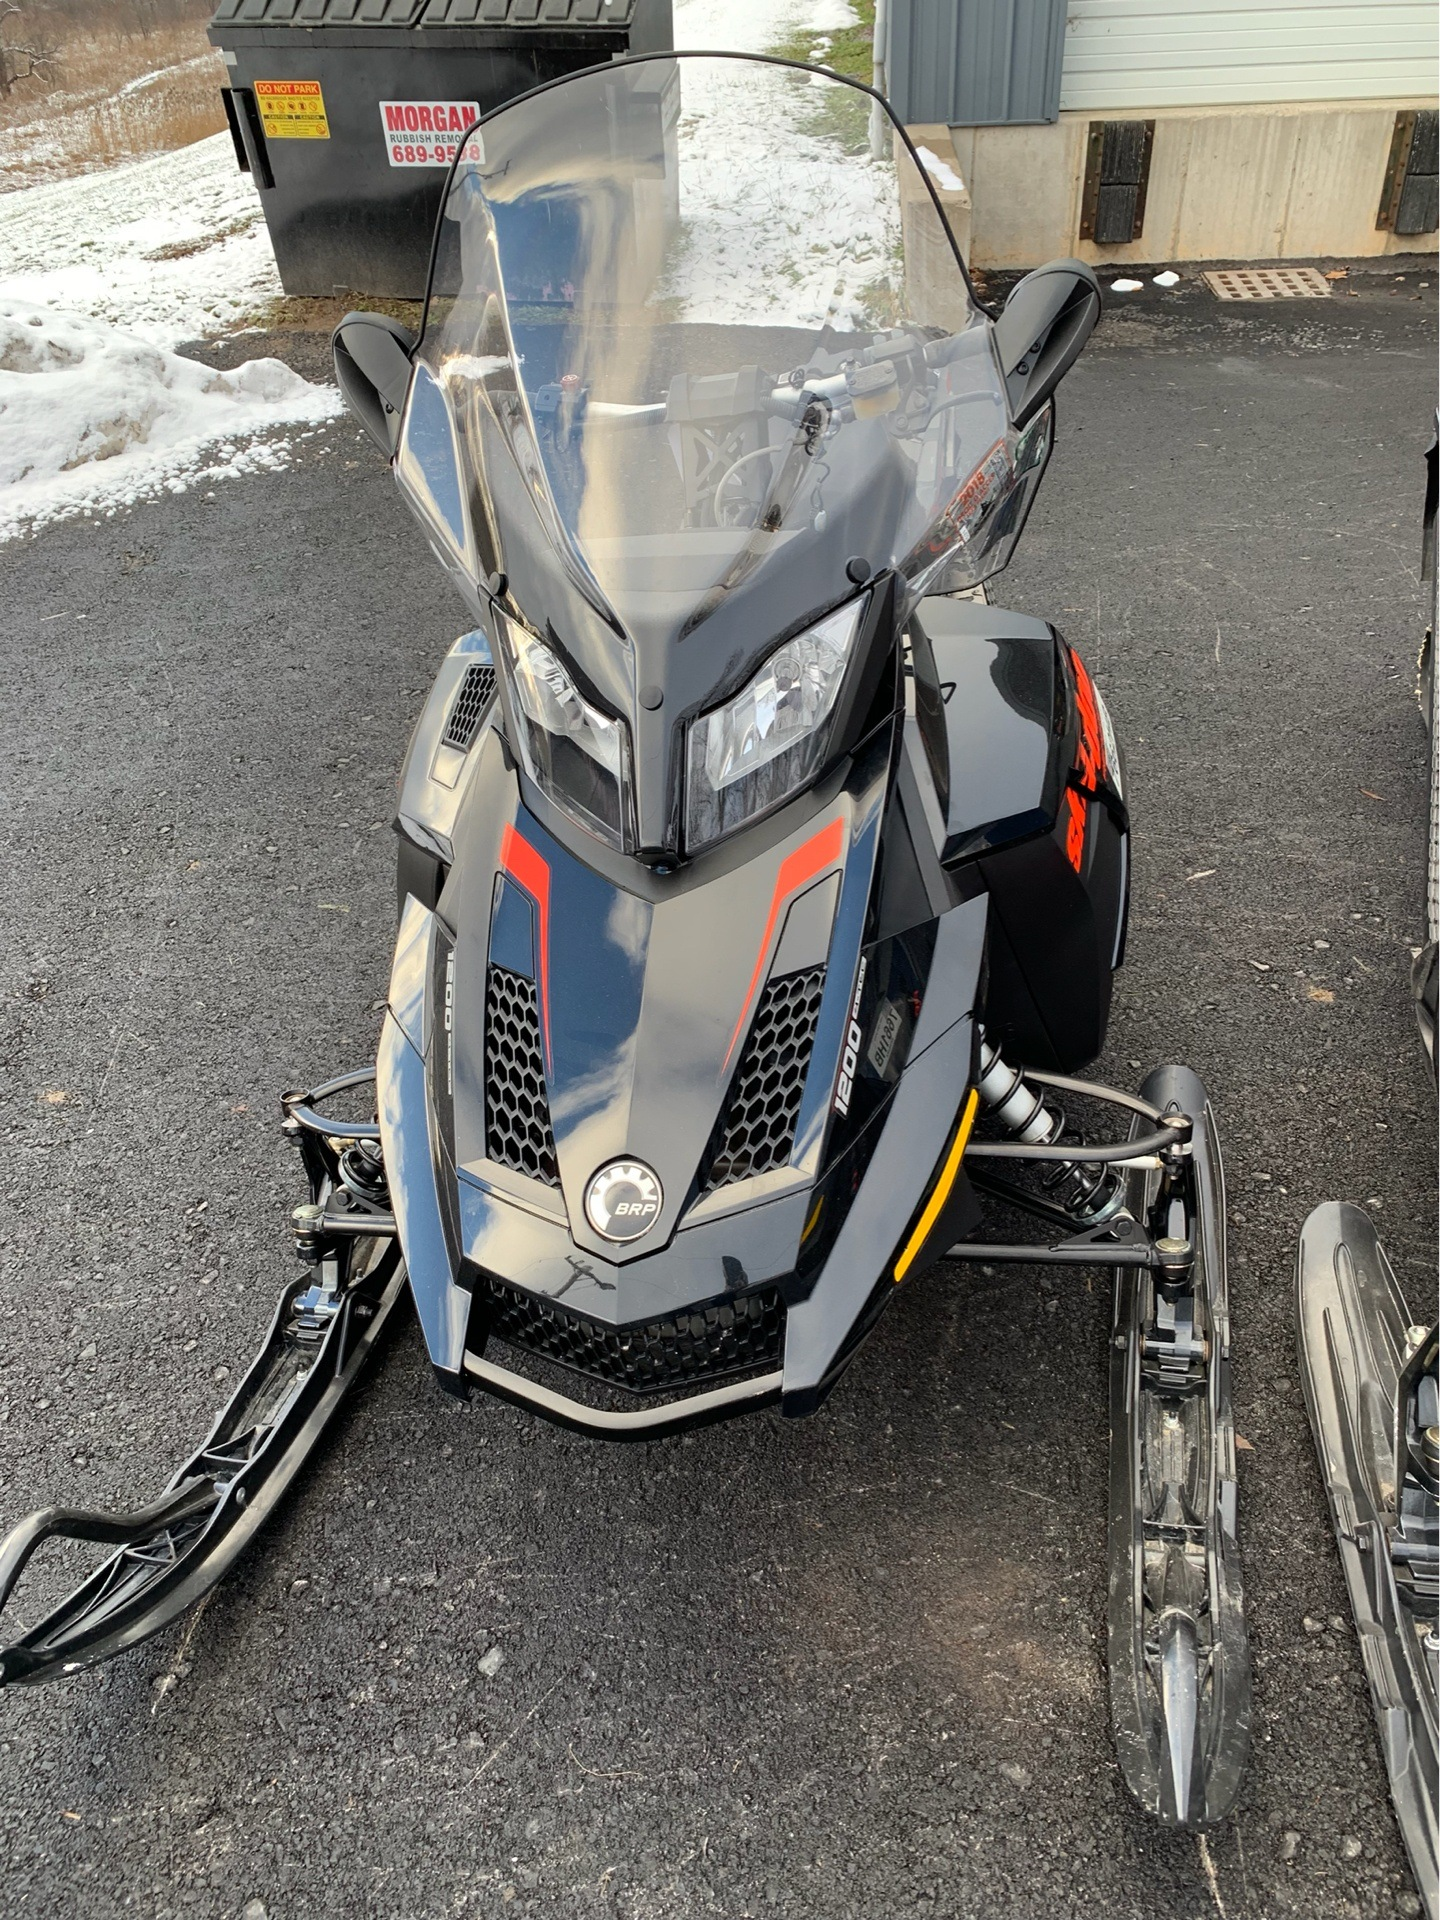 2015 Ski-Doo Renegade® Adrenaline™ 4-TEC® 1200 in Weedsport, New York - Photo 1